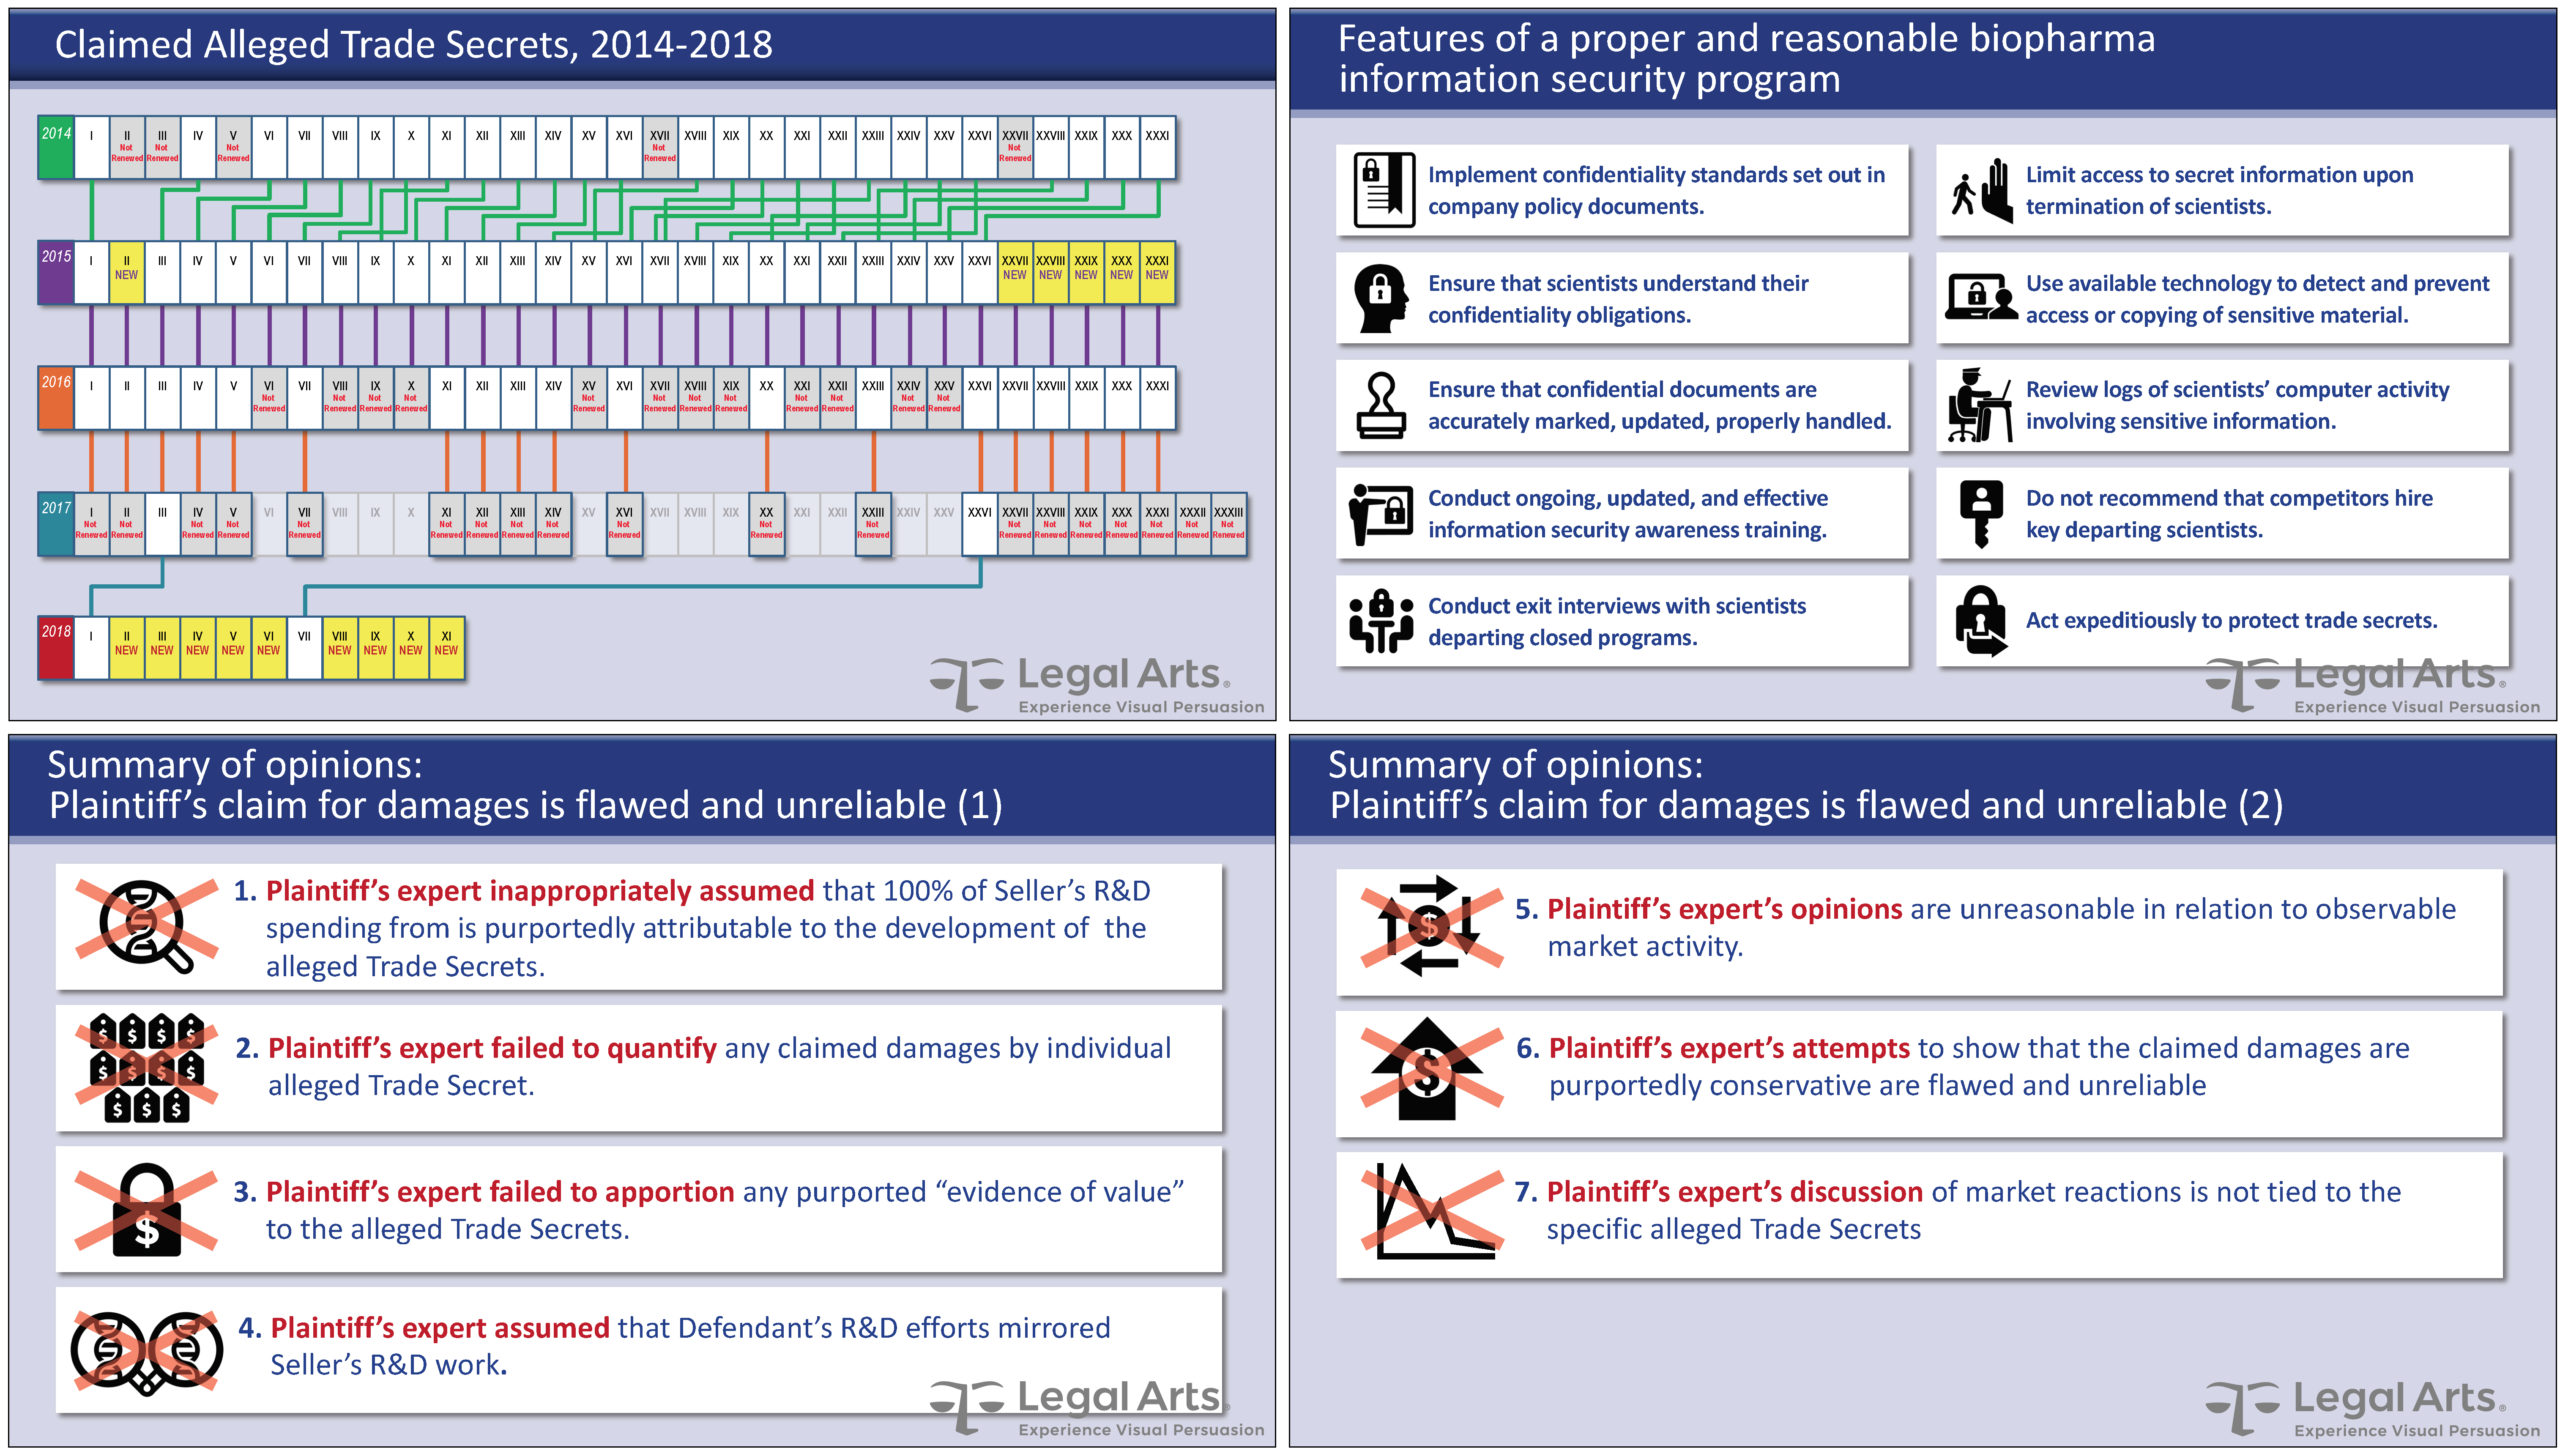 Progression of the plaintiff's trade secrets over time: of 23 original secrets only 2 survived to the final round, along with 9 new secrets (upper left); the reasonable efforts required to protect pharma trade secrets (upper right); the reasons plaintiff's claim for damages was flawed and unreliable (below).